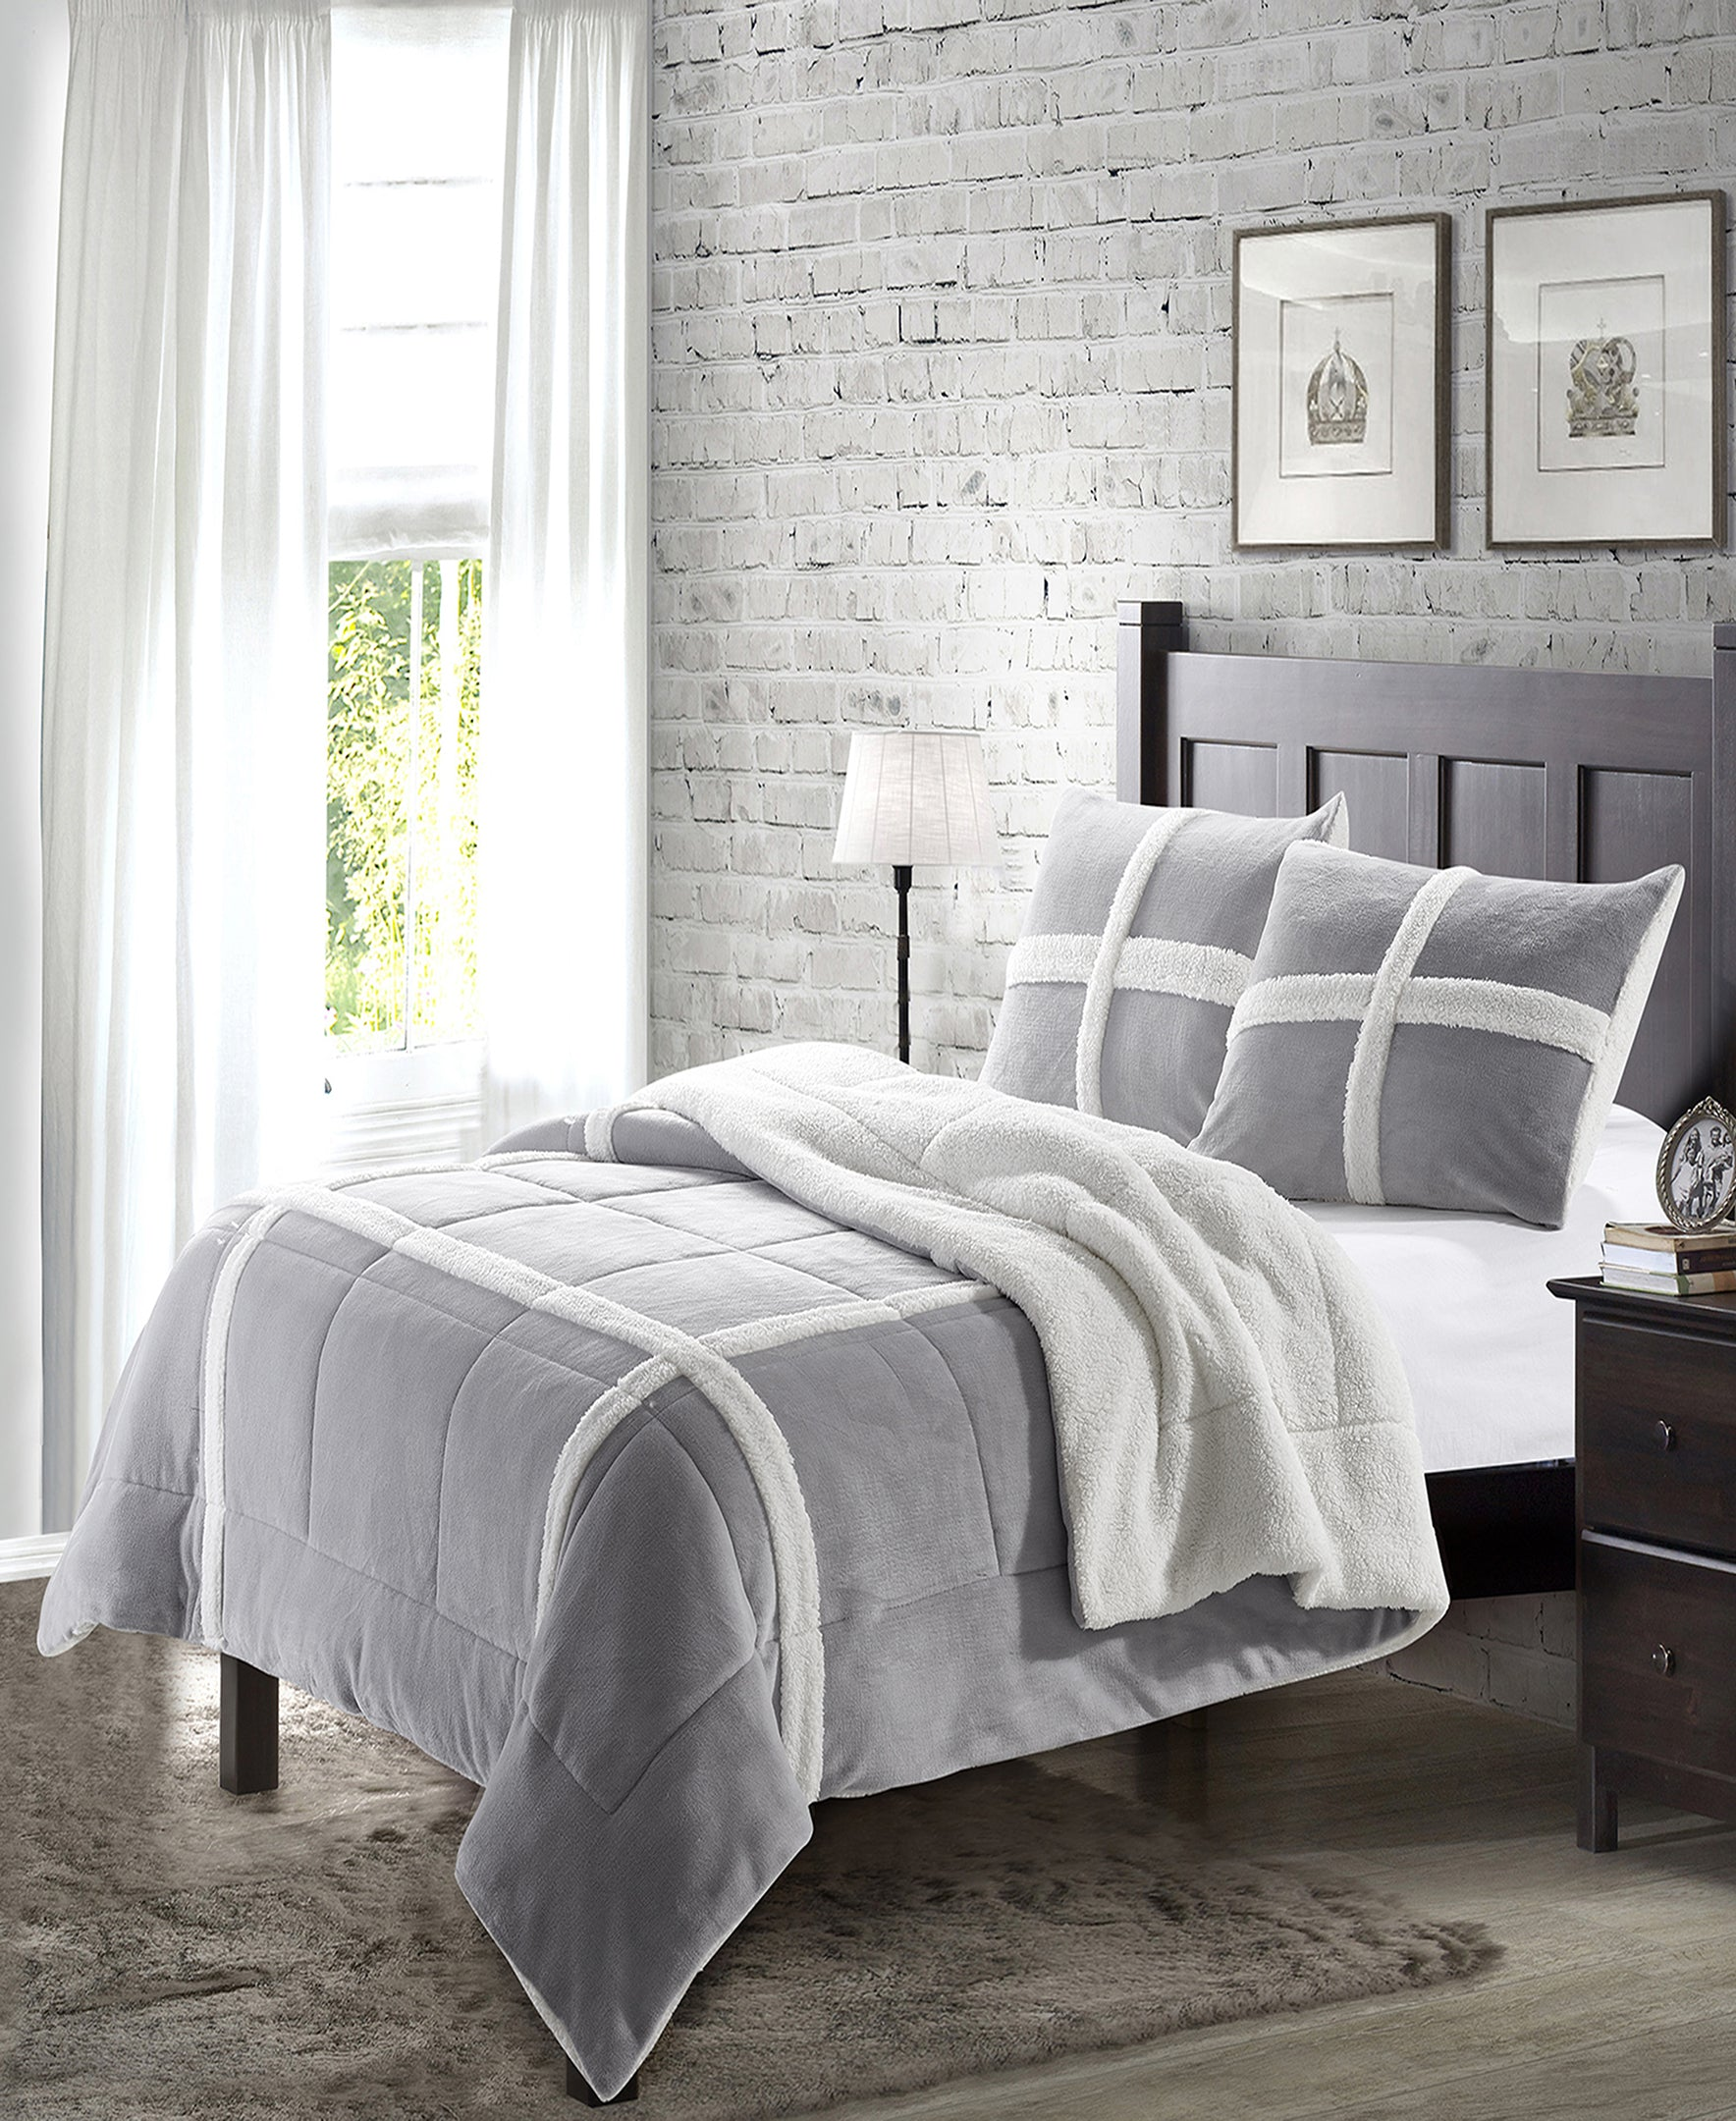 """Simple Elegance by Ben&Jonah 3 Piece King Size Flannel Blanket Set with Sherpa Backing (102"""" x 90"""") - Grey"""